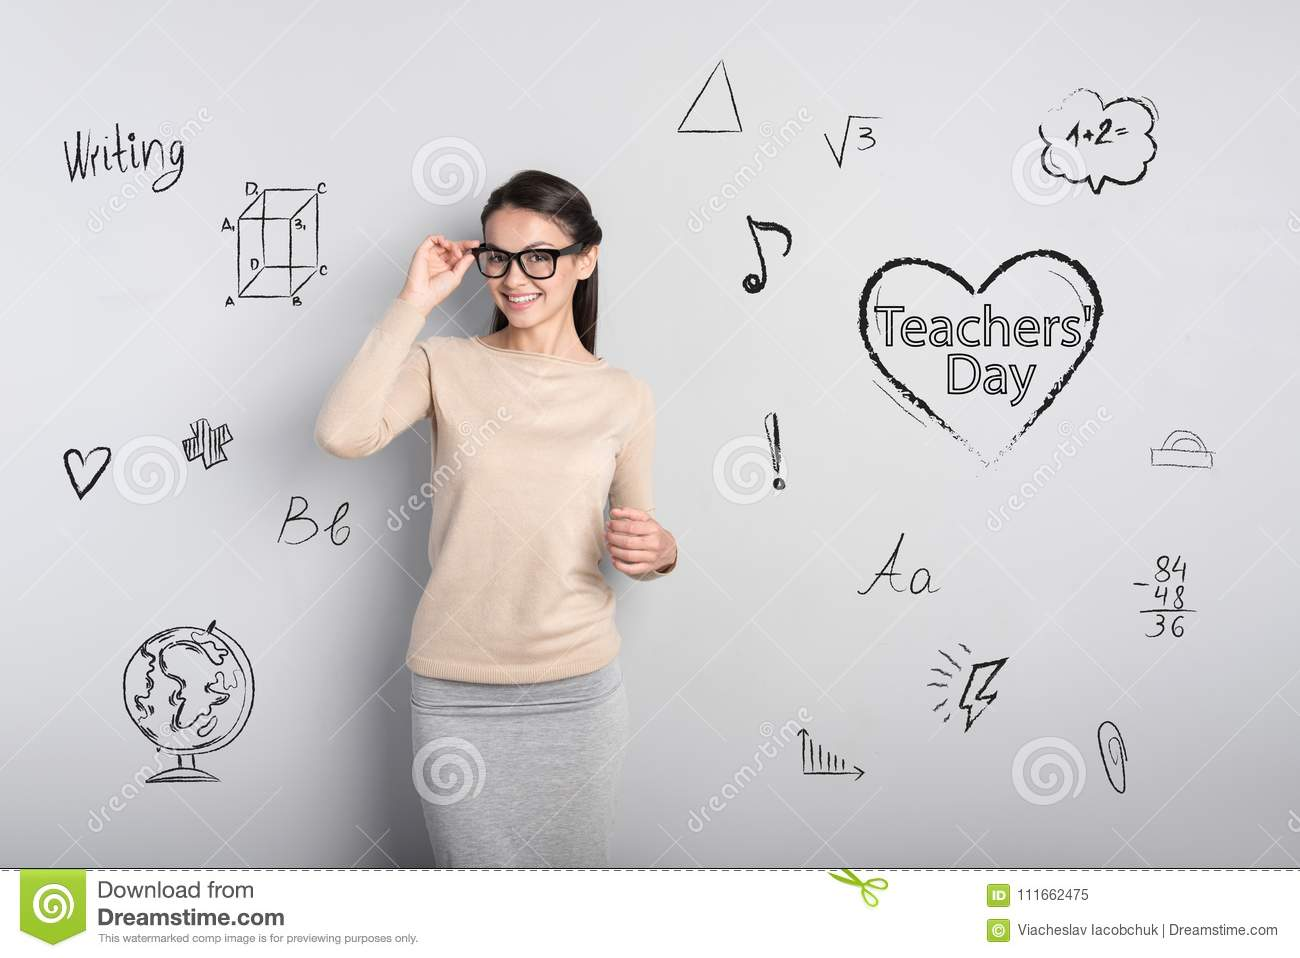 Beautiful young teacher smiling while celebrating Teachers Day